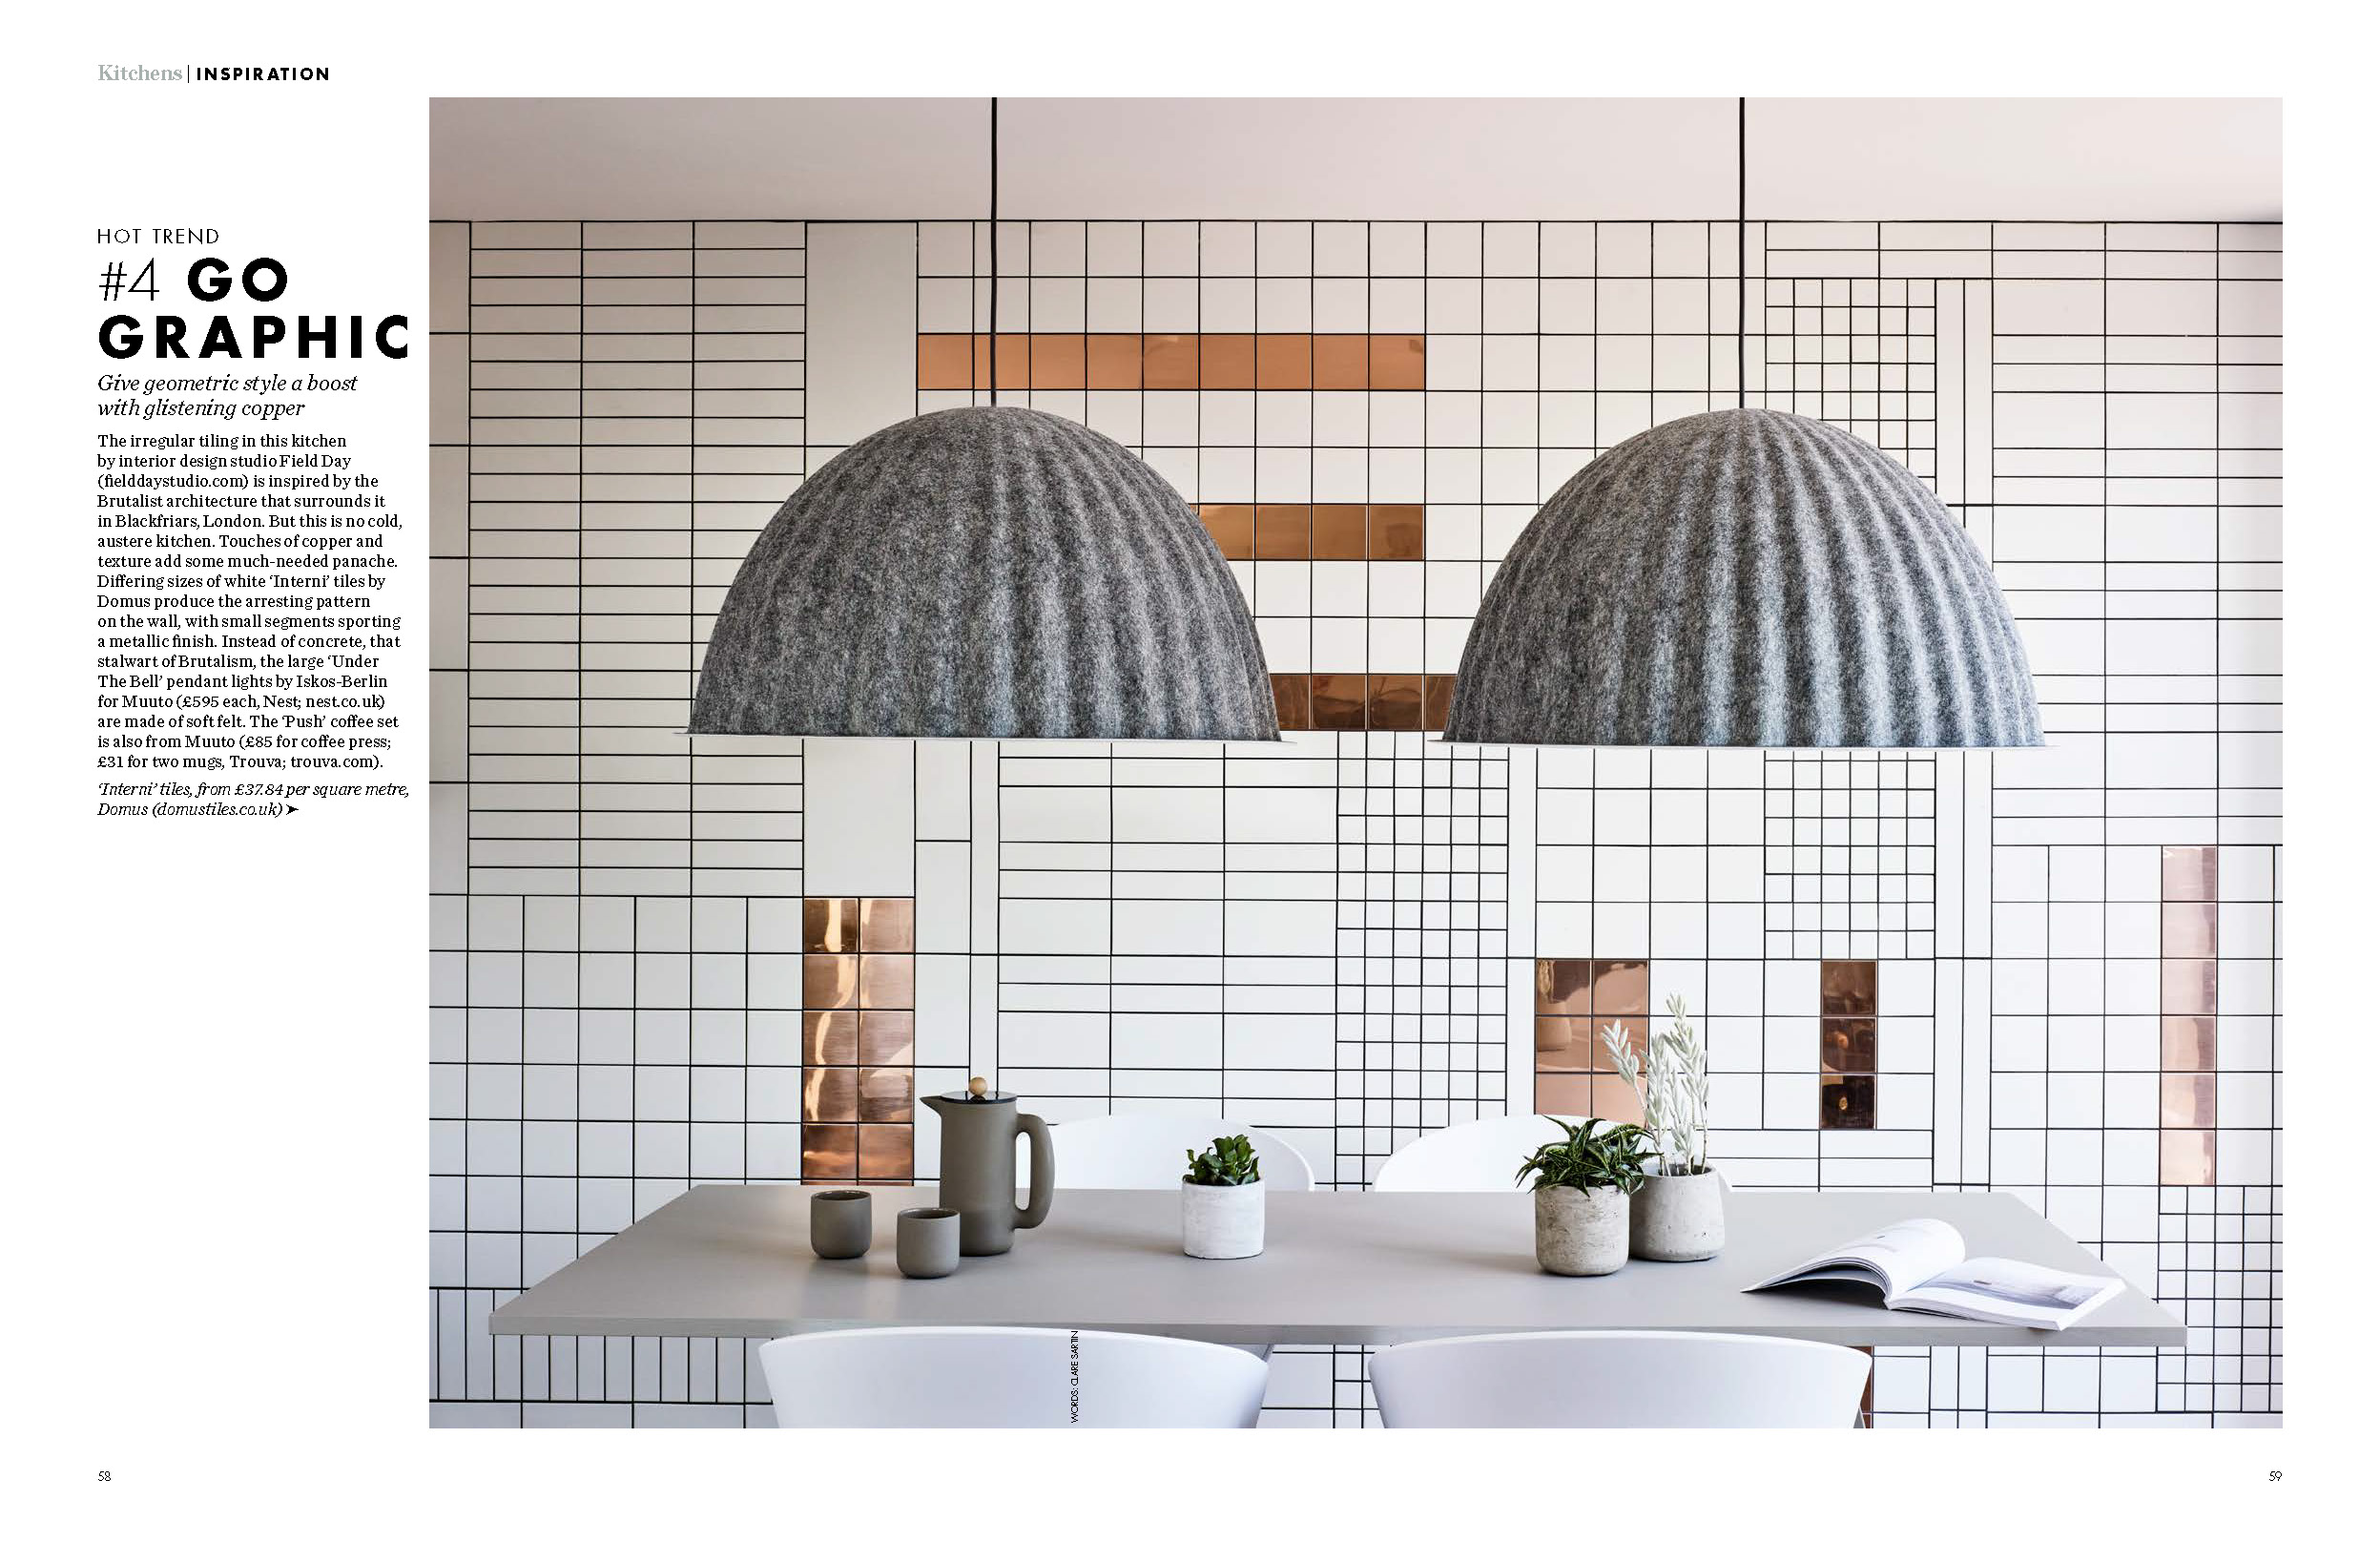 ELLE DECORATION, KITCHEN INSPIRATION 2017